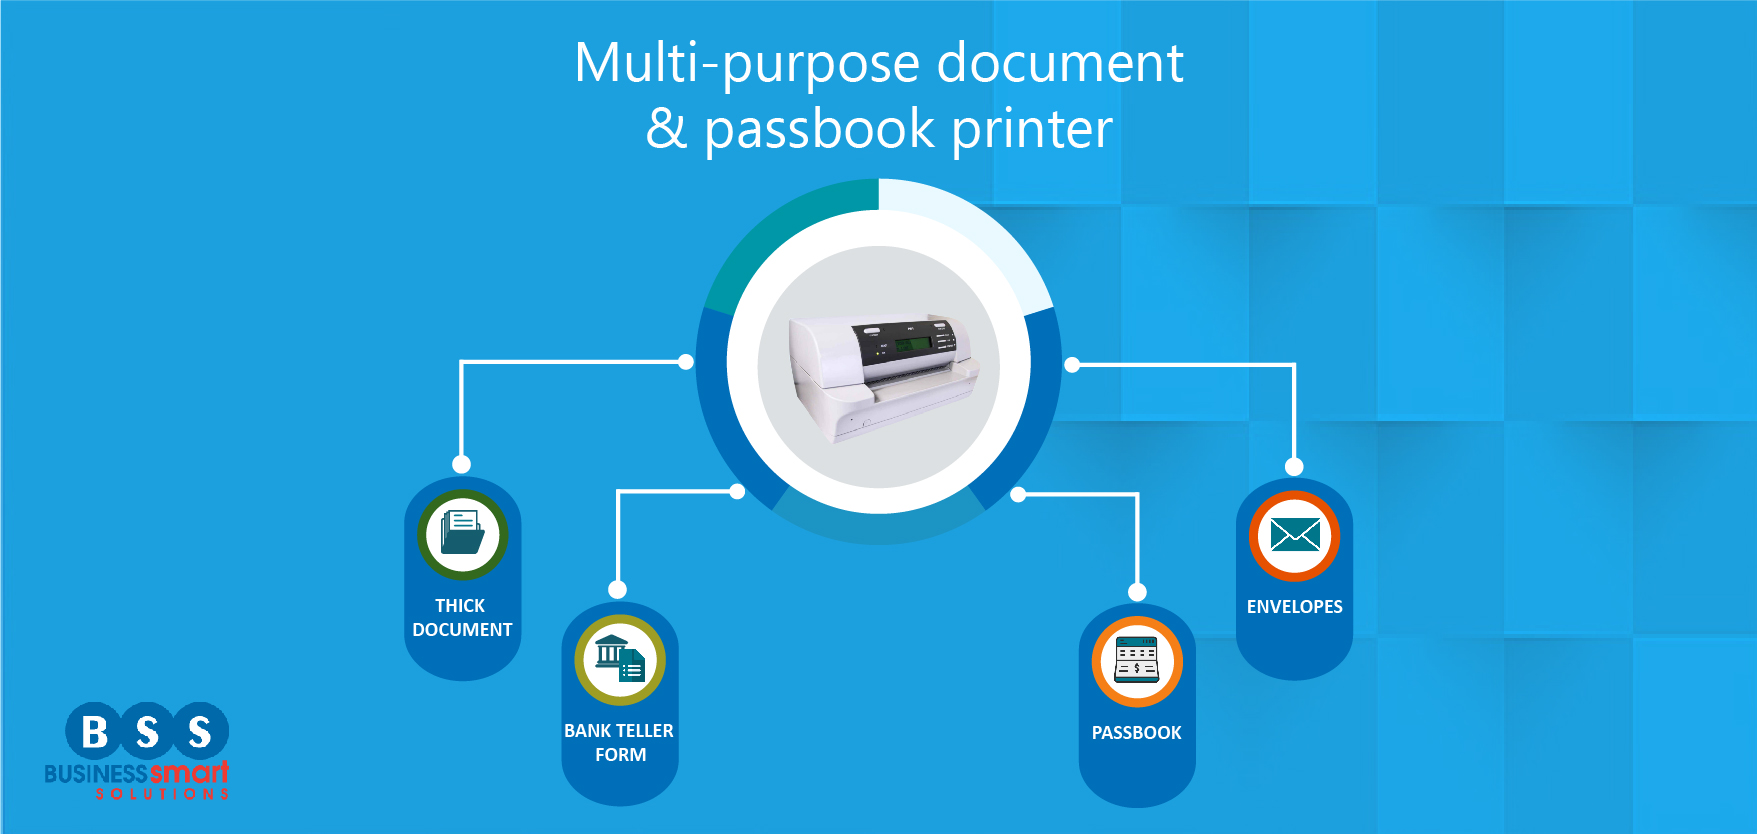 The PR9 is the All-In-One business printer catered for single-sheet, multiple-ply or passbook documents.